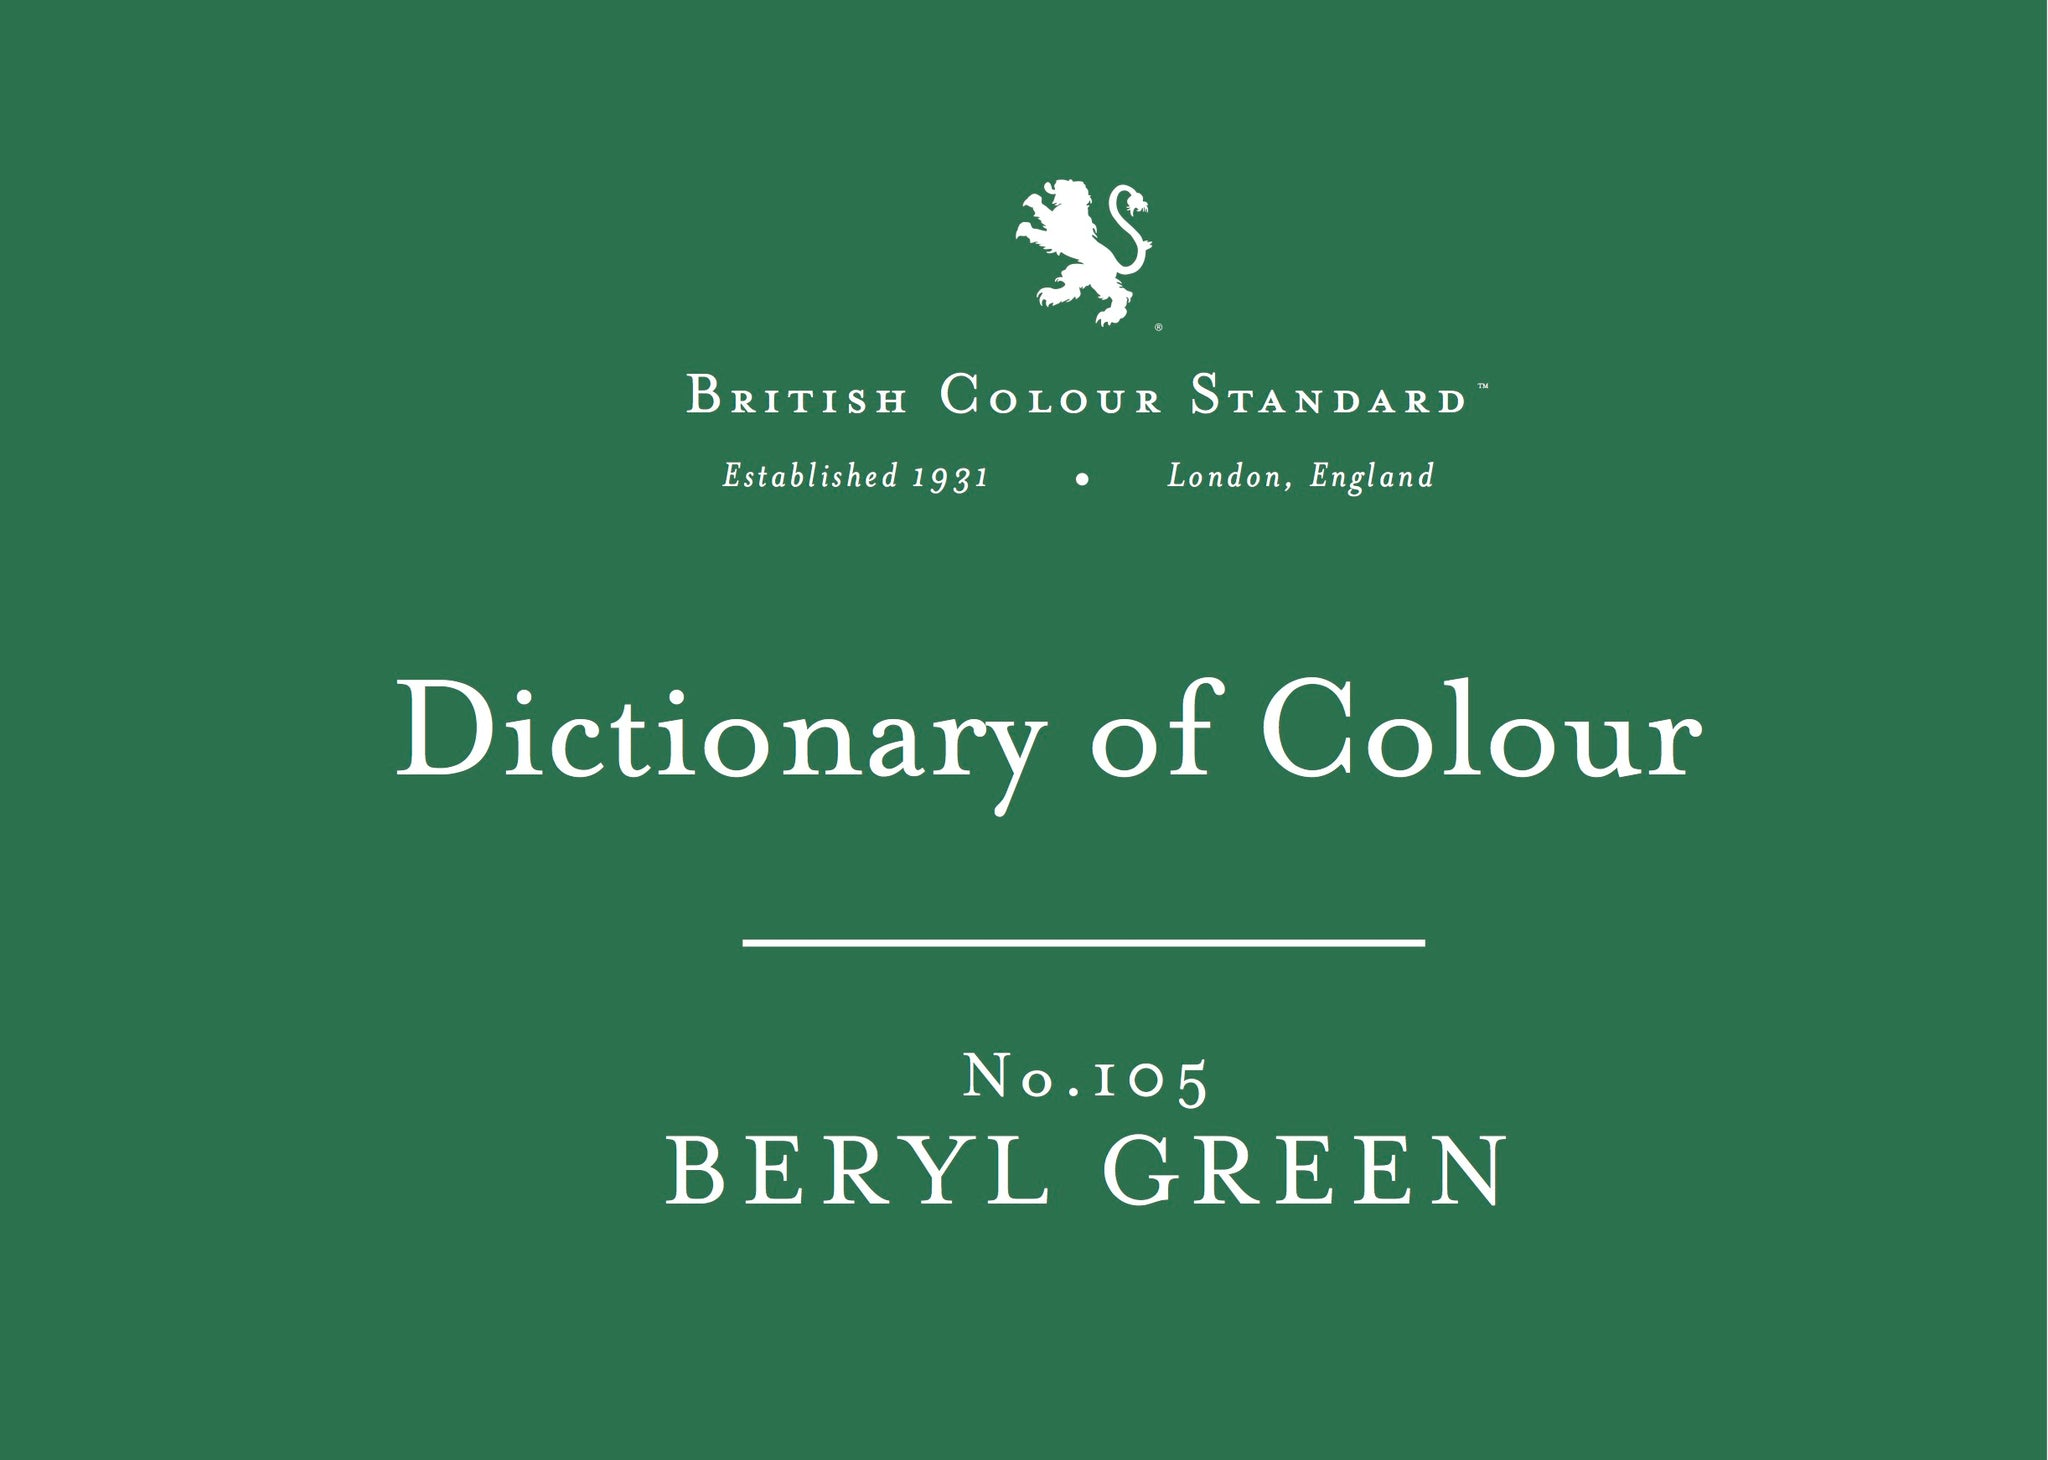 BRITISH COLOUR STANDARD - Beryl Green No.105